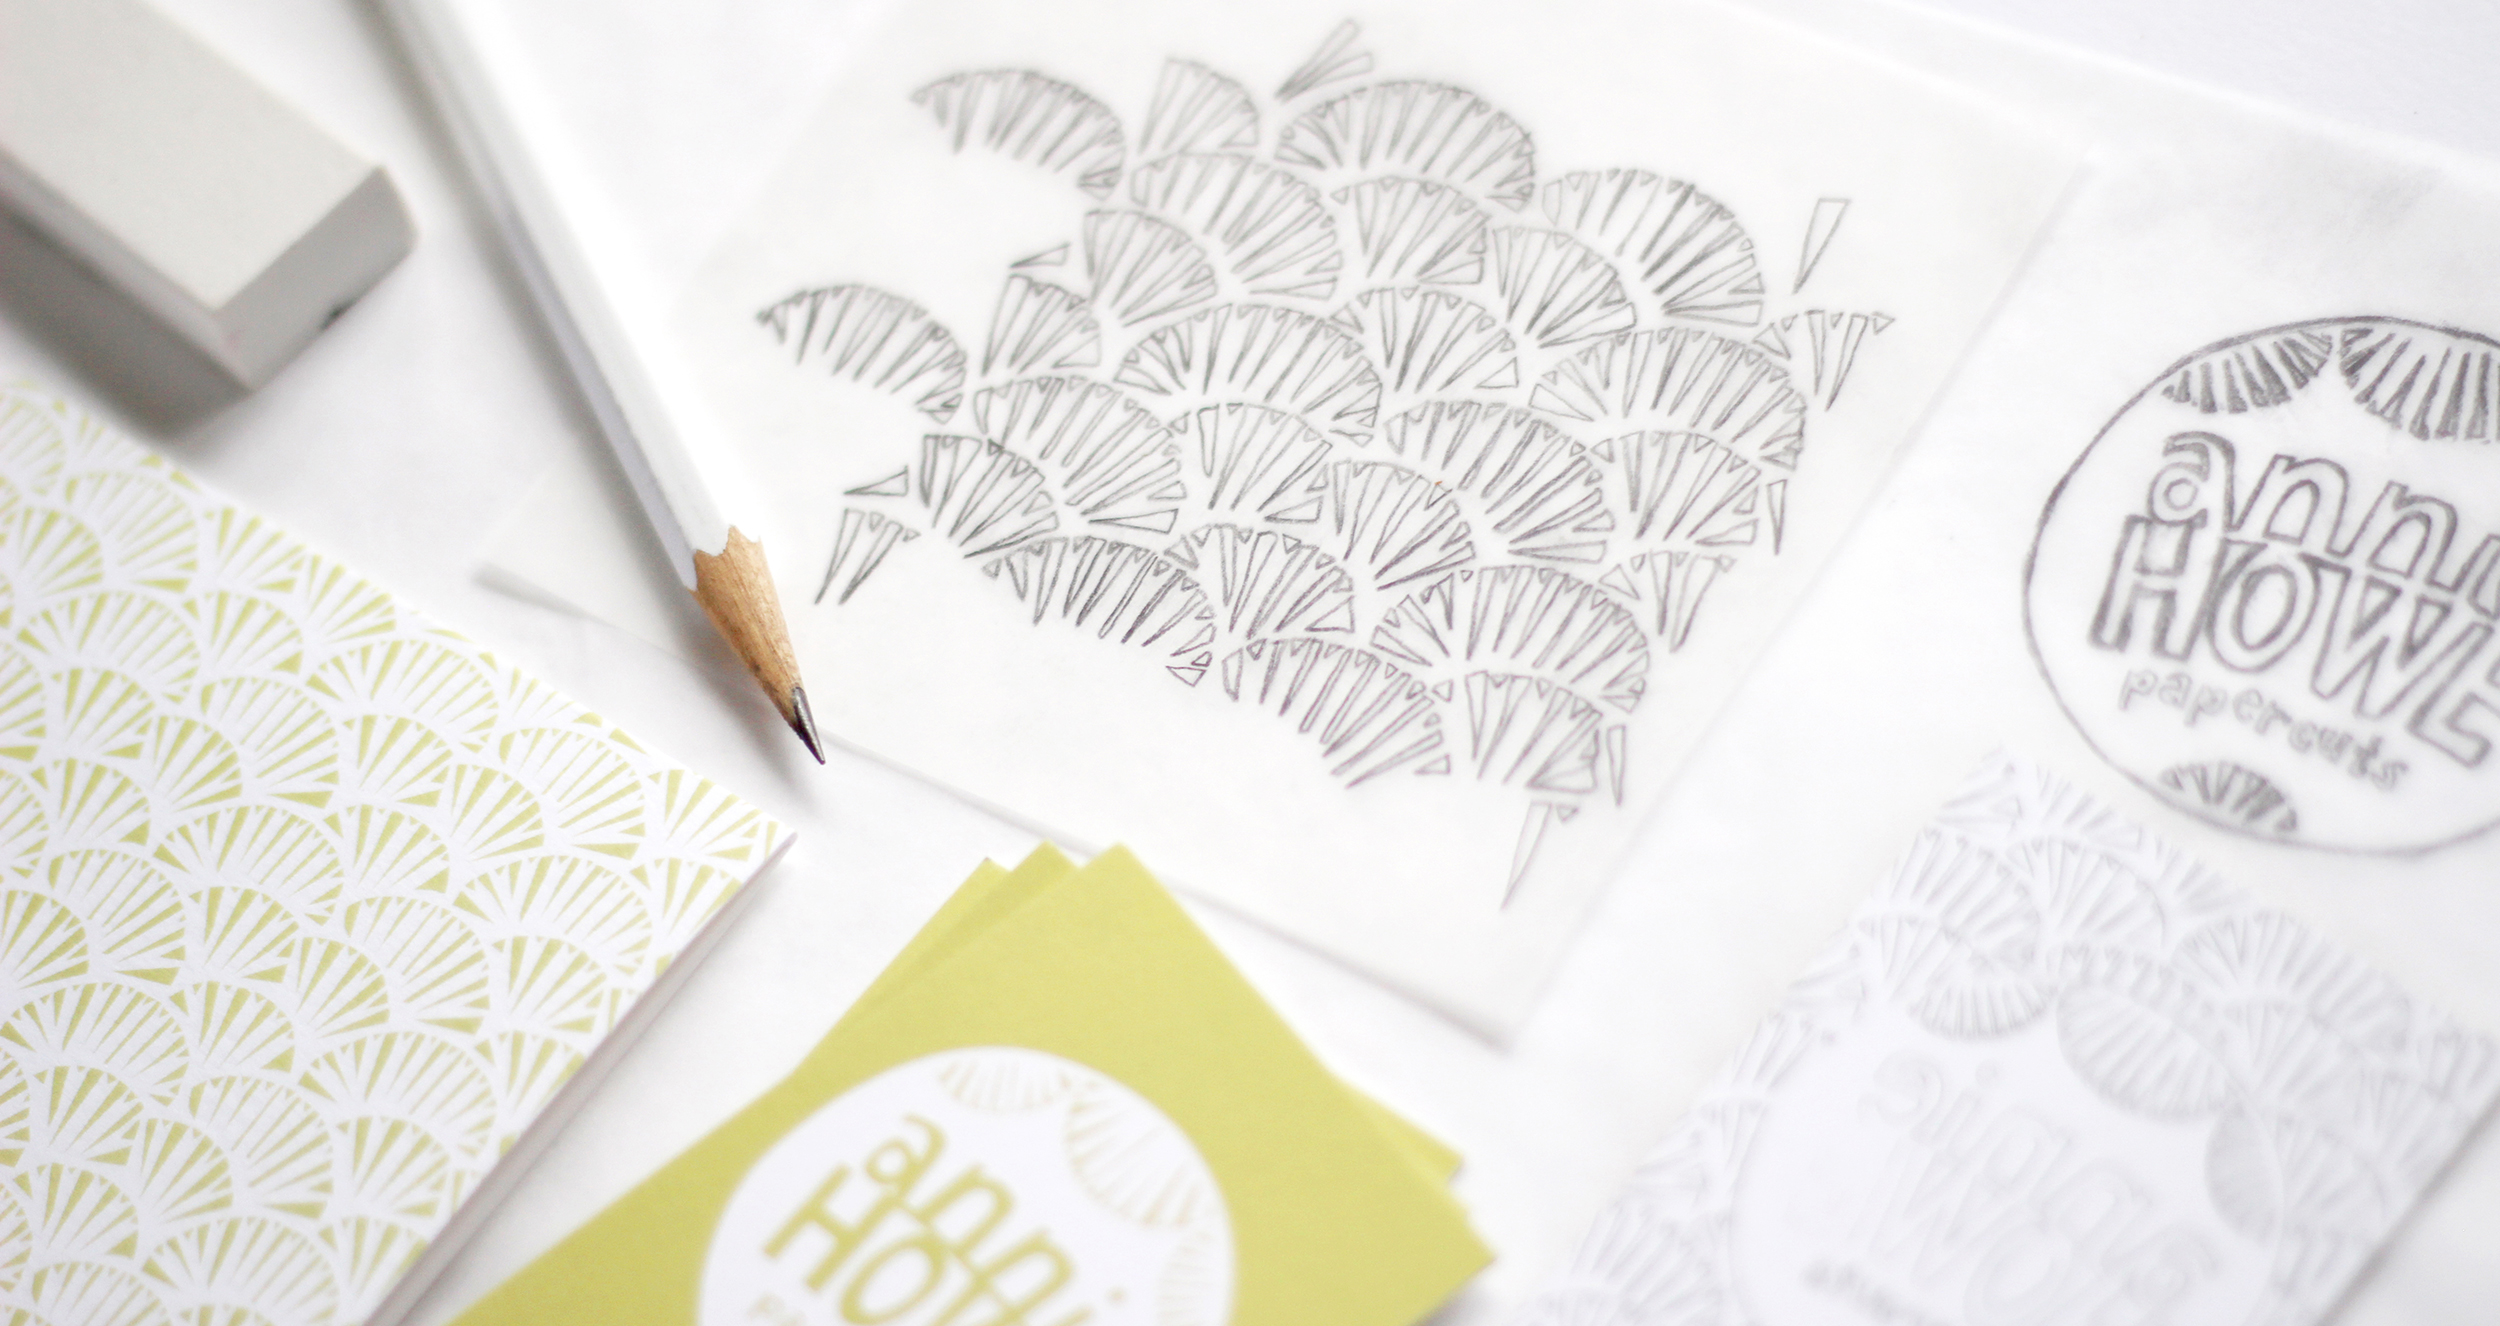 Premium Brand & Website    ANNIE HOWE PAPERCUTS    VIEW PROJECT